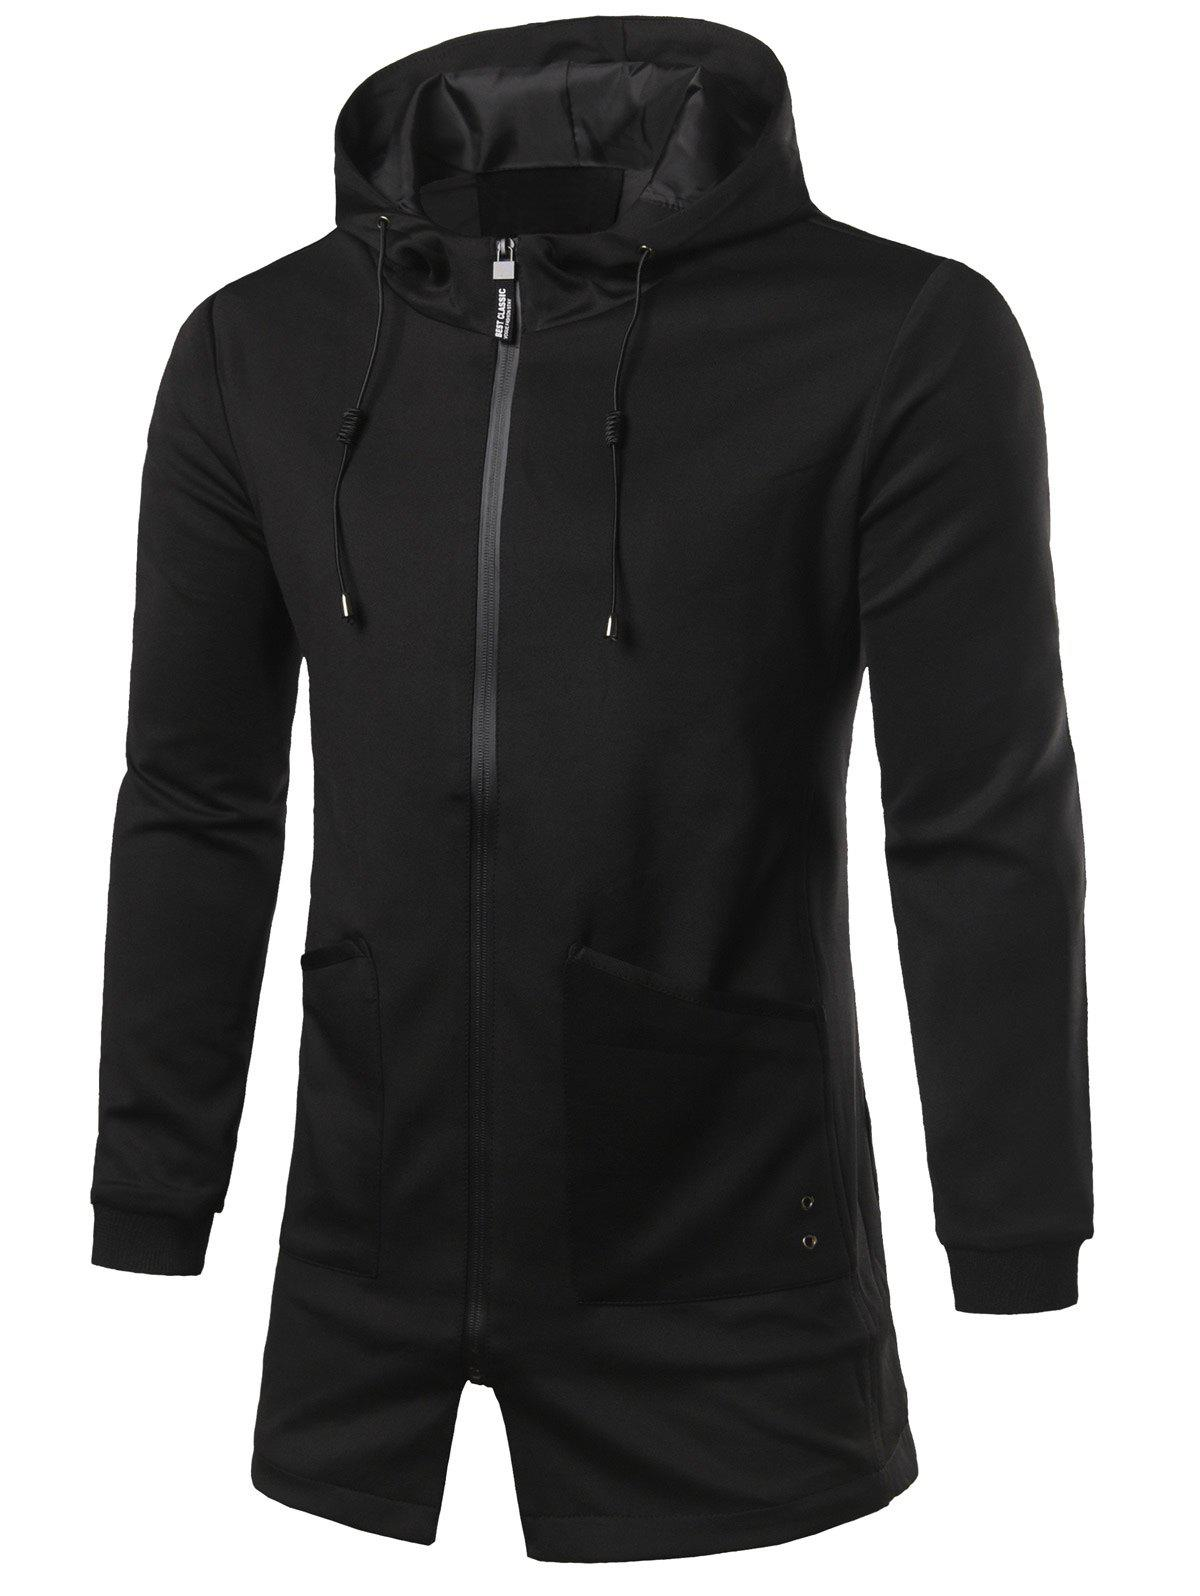 Hooded Zip Up Pocket Patched Longline Coat 198611203